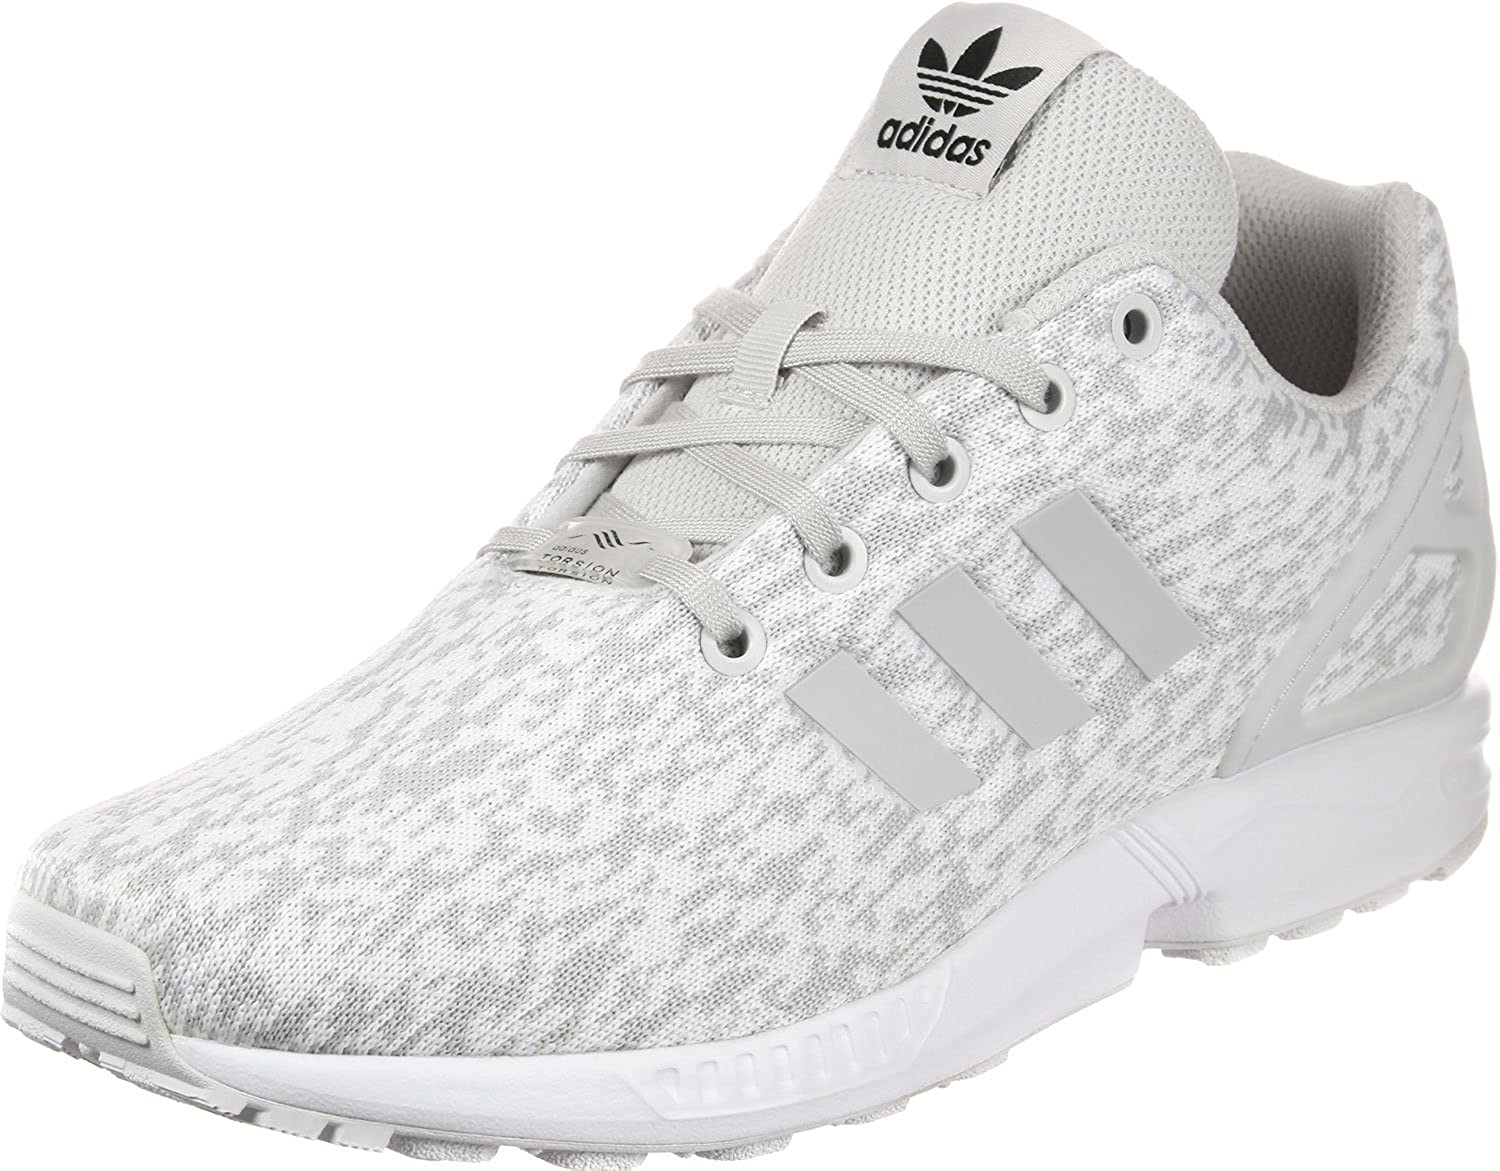 new product 513ad deee4 adidas ZX Flux J, Chaussures de Fitness Mixte Enfant